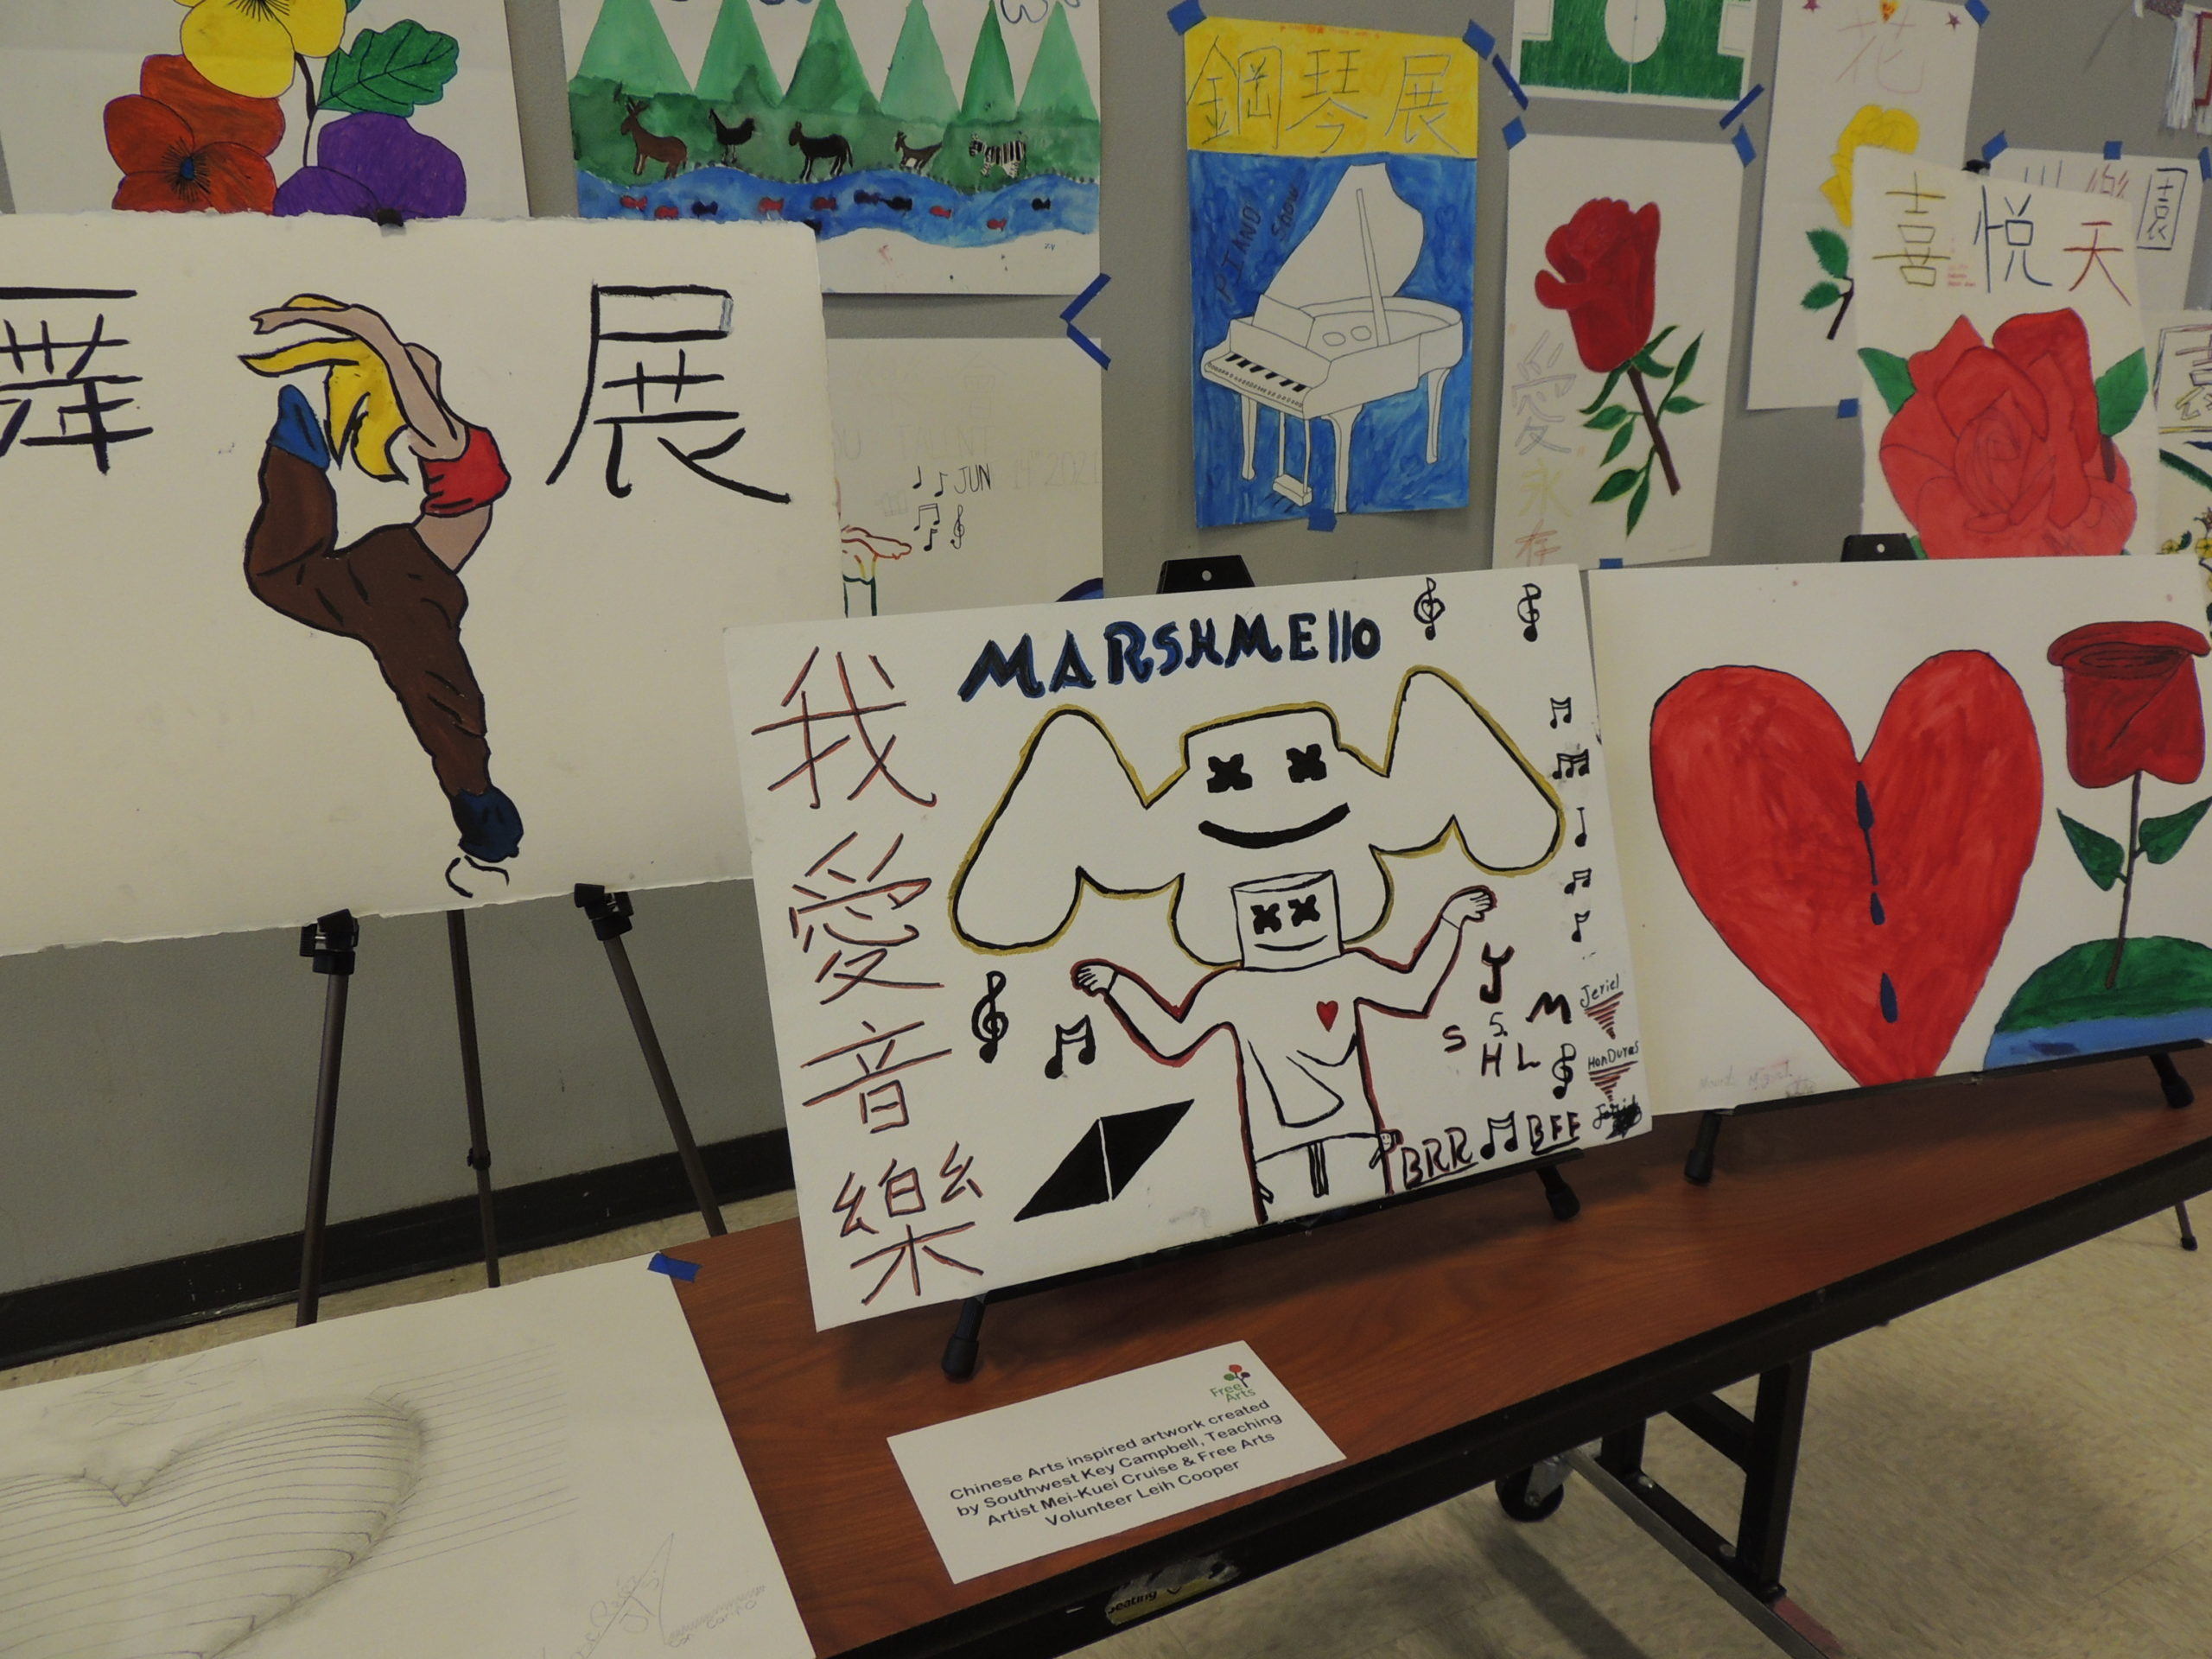 Youth art created in collaboration with Free Arts